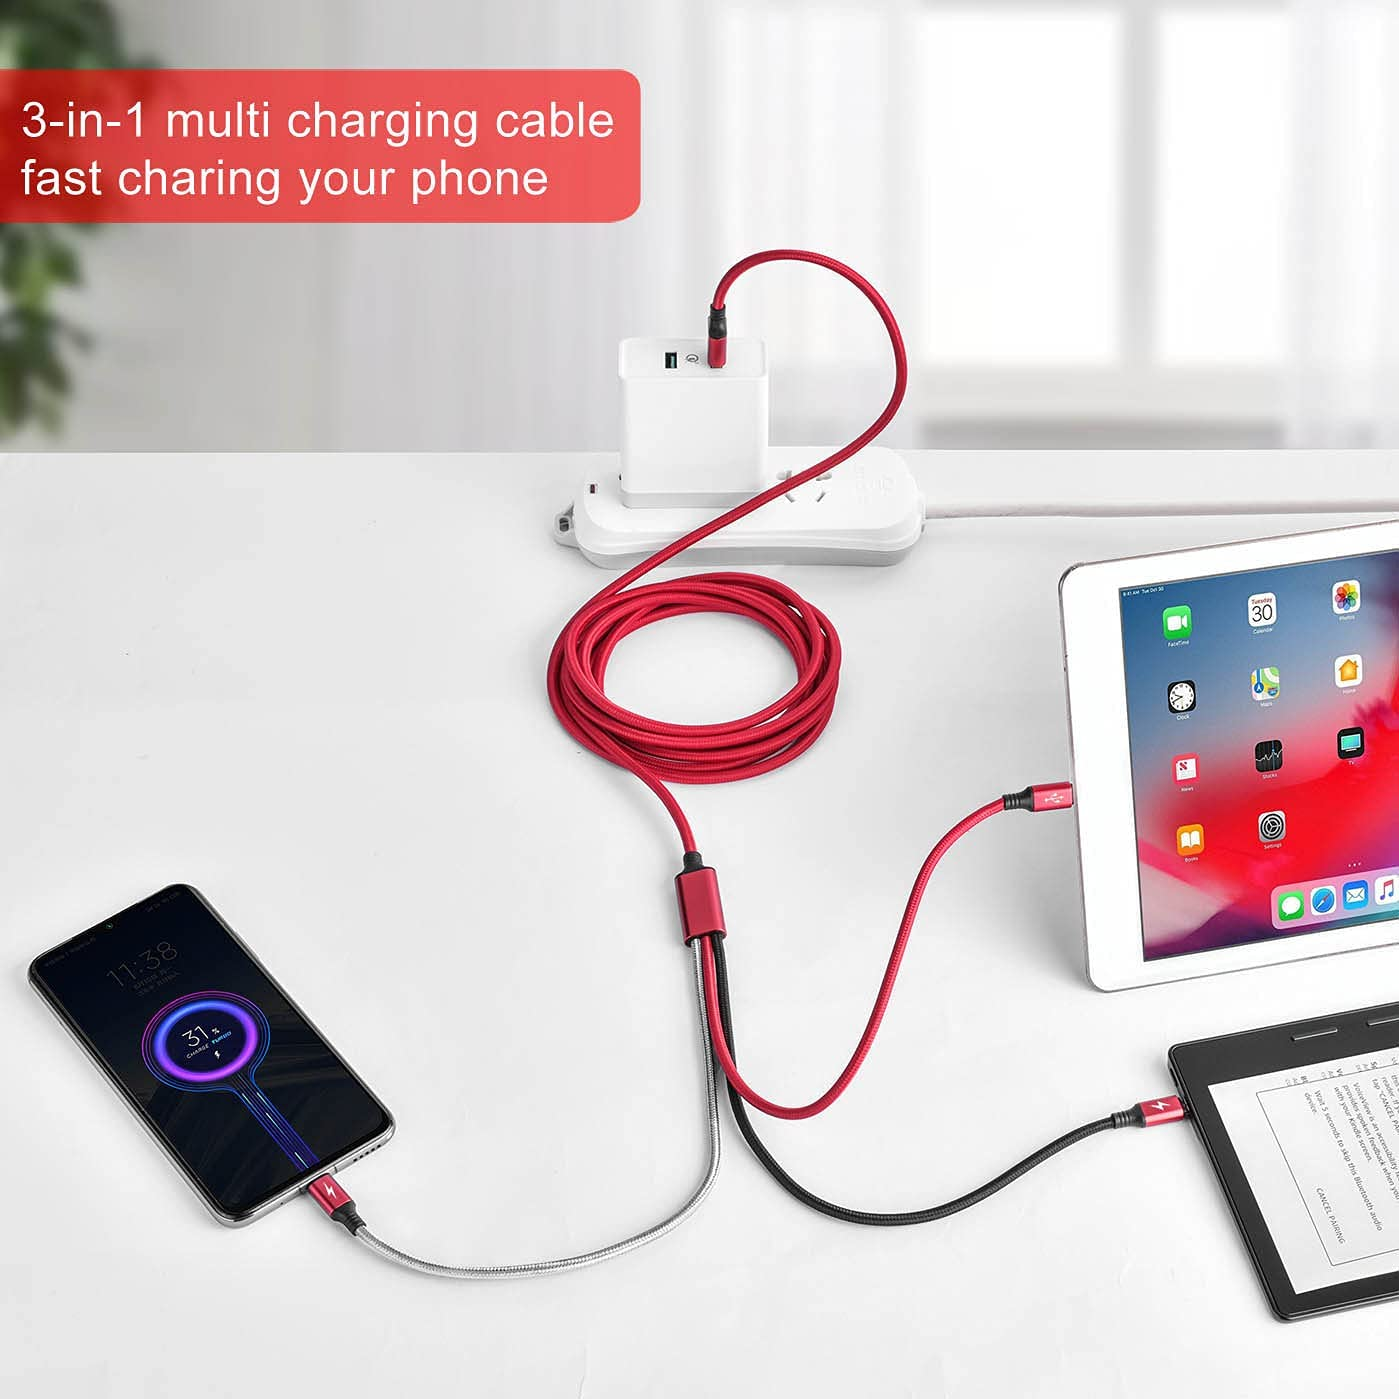 Fast Charge Multi Charging Cable Beautiful of Green Tropical Leaves Multi 3 in 1 Retractable Multi USB Cable Fast Charging with Micro USB//Type C Compatible with Cell Phones Tablets and More